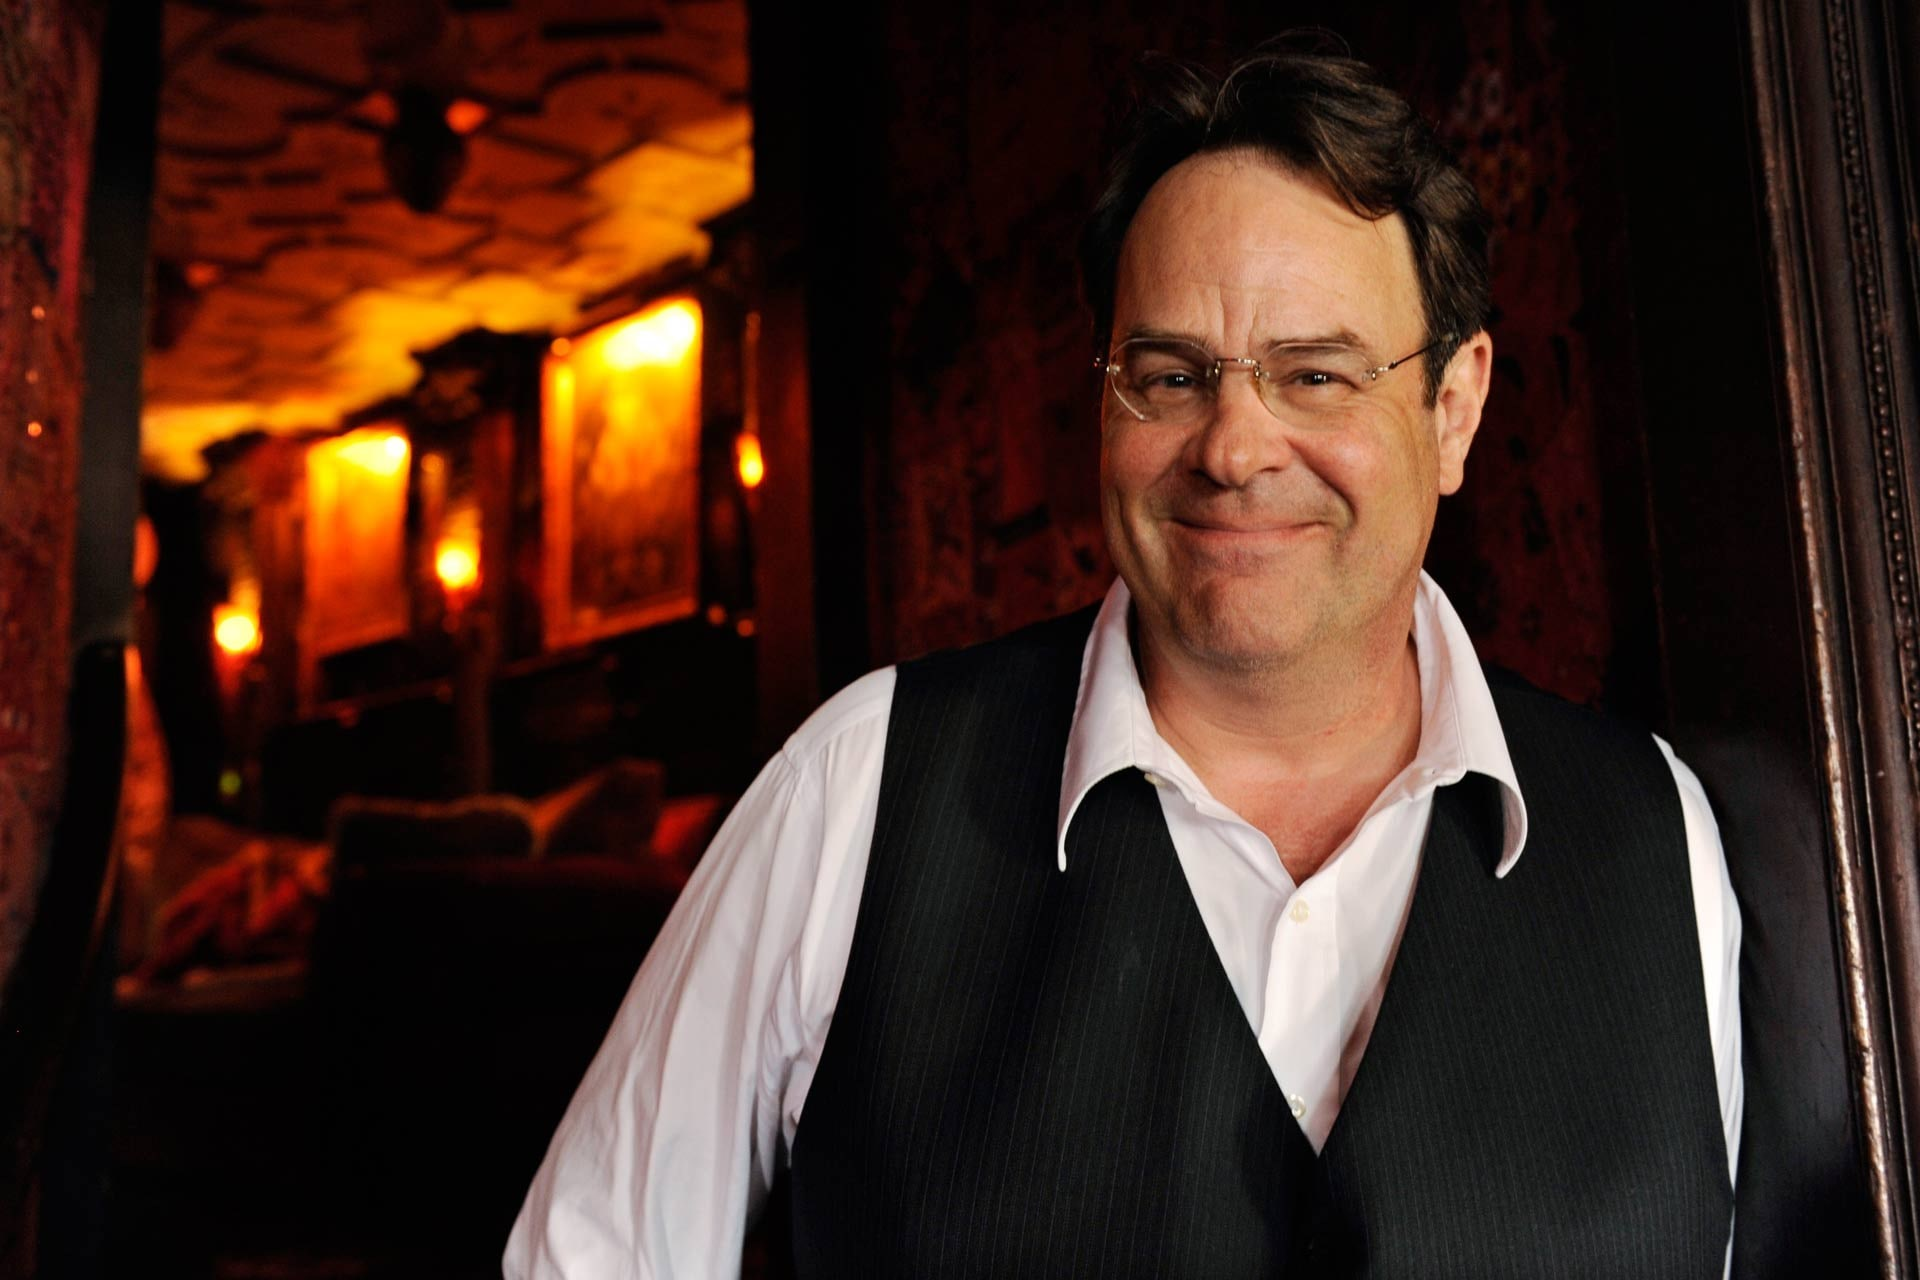 Dan Aykroyd Desktop wallpapers